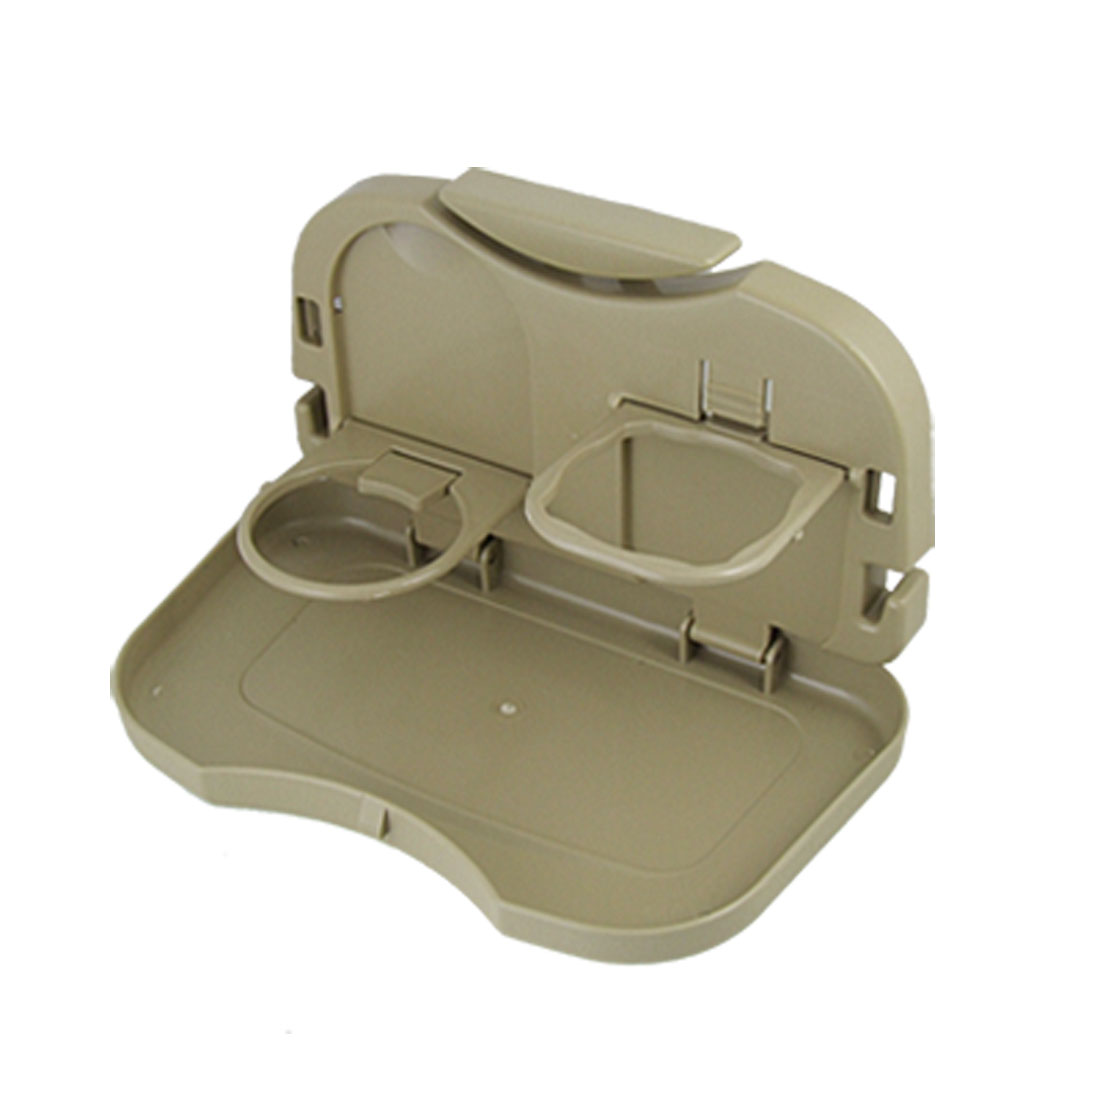 Car Auto Multifunctional Foldable Drink Holder Tray Khaki